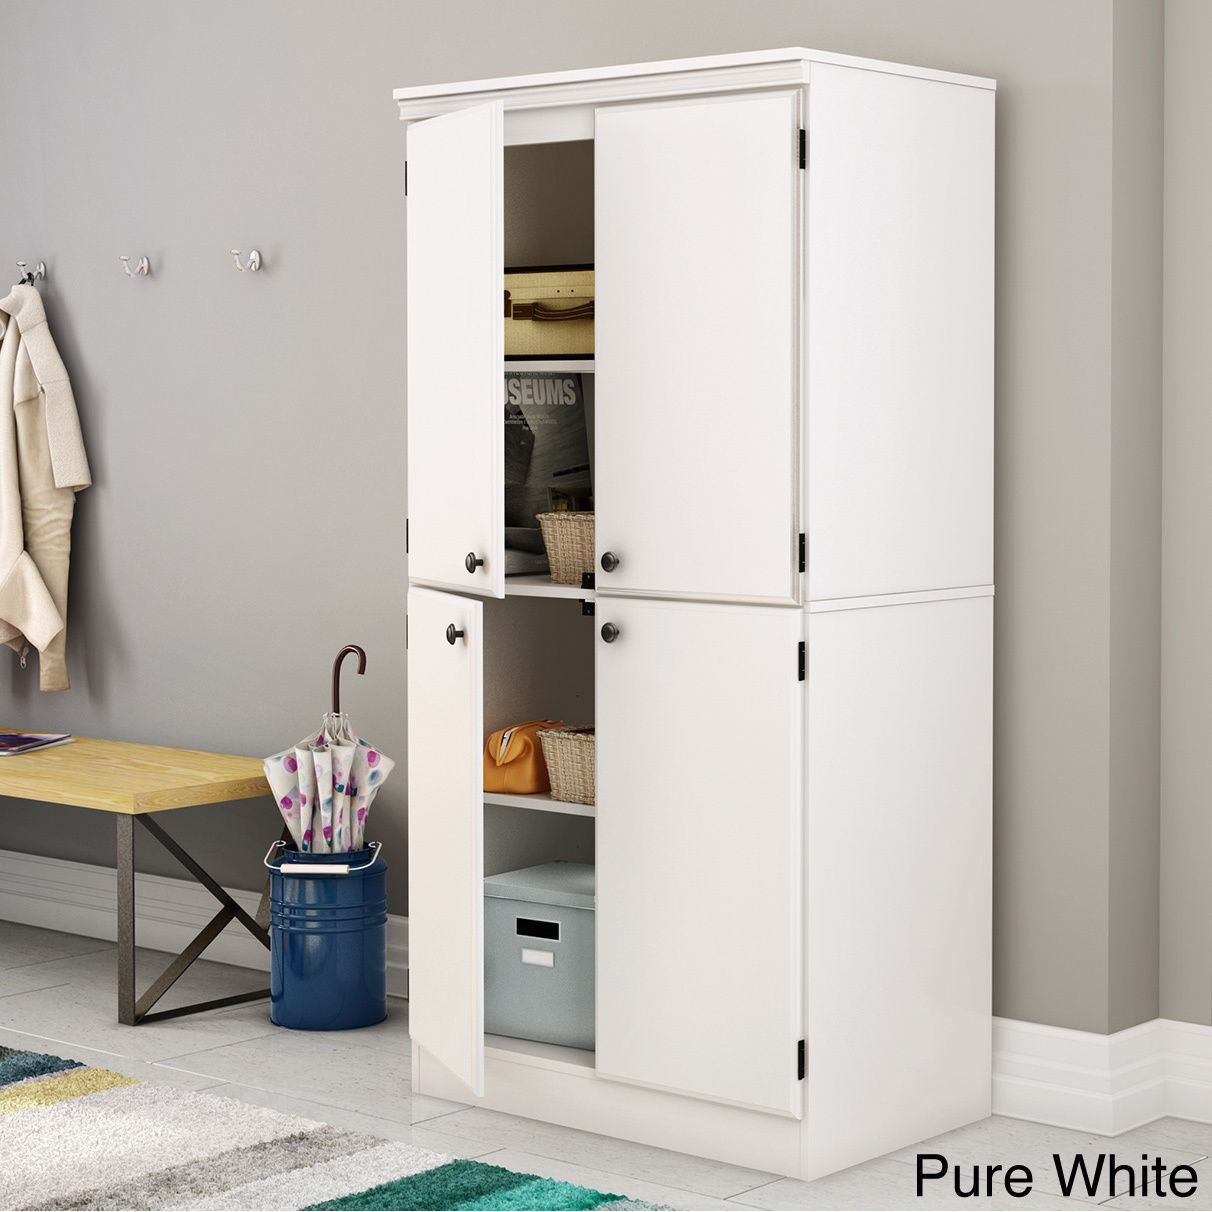 South Shore Morgan Storage Cabinet 4 Door Door Storage Storage Storage Cabinets